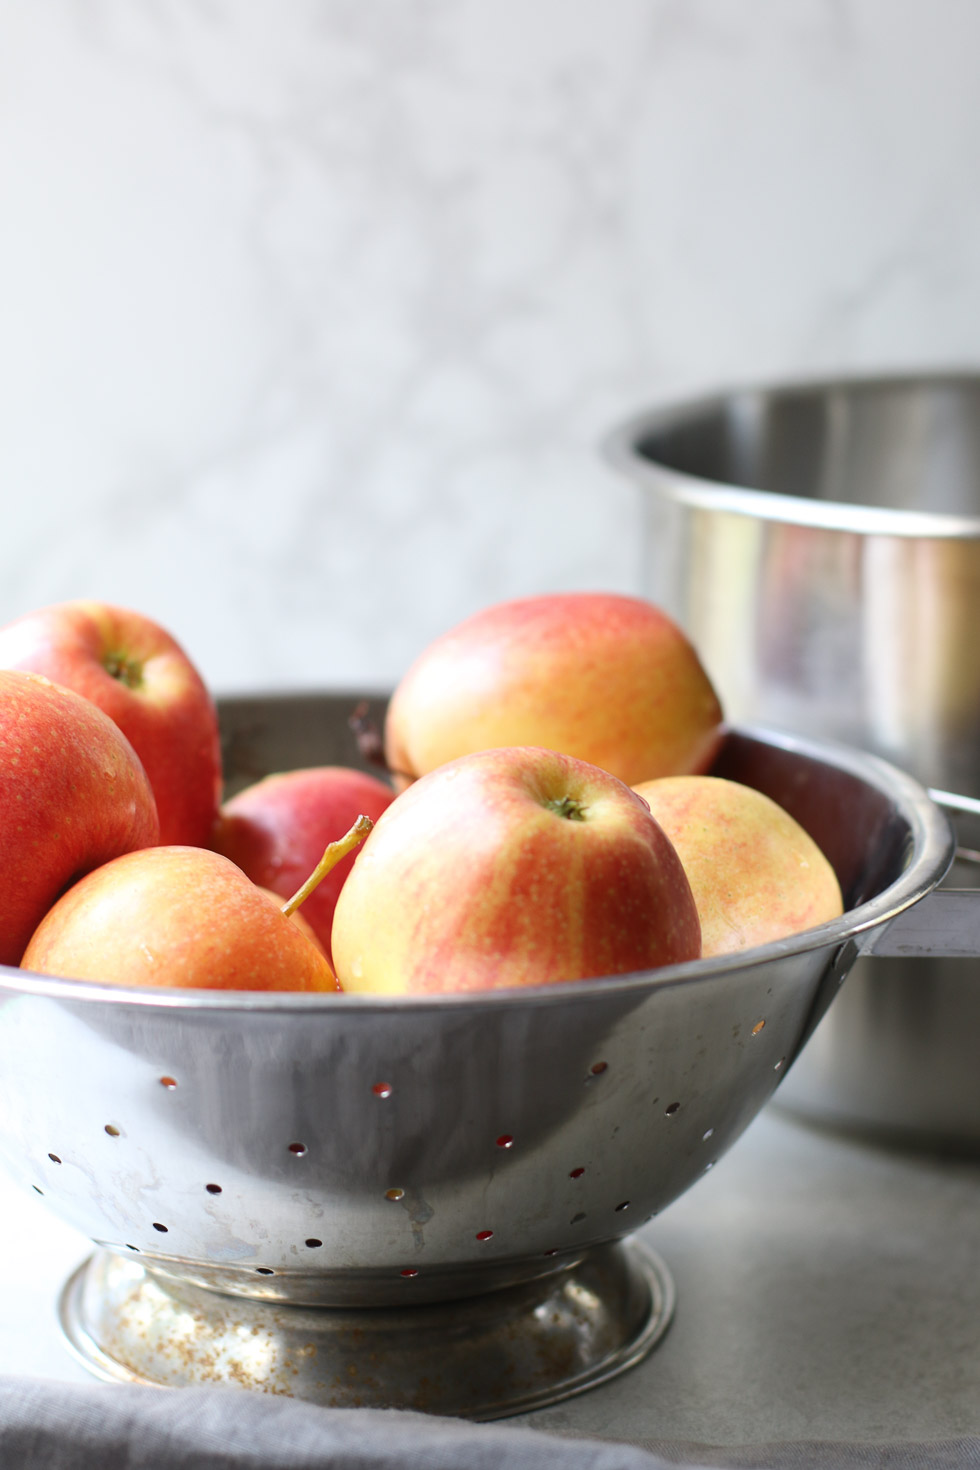 How to Make Pressure Cooker Apple Sauce